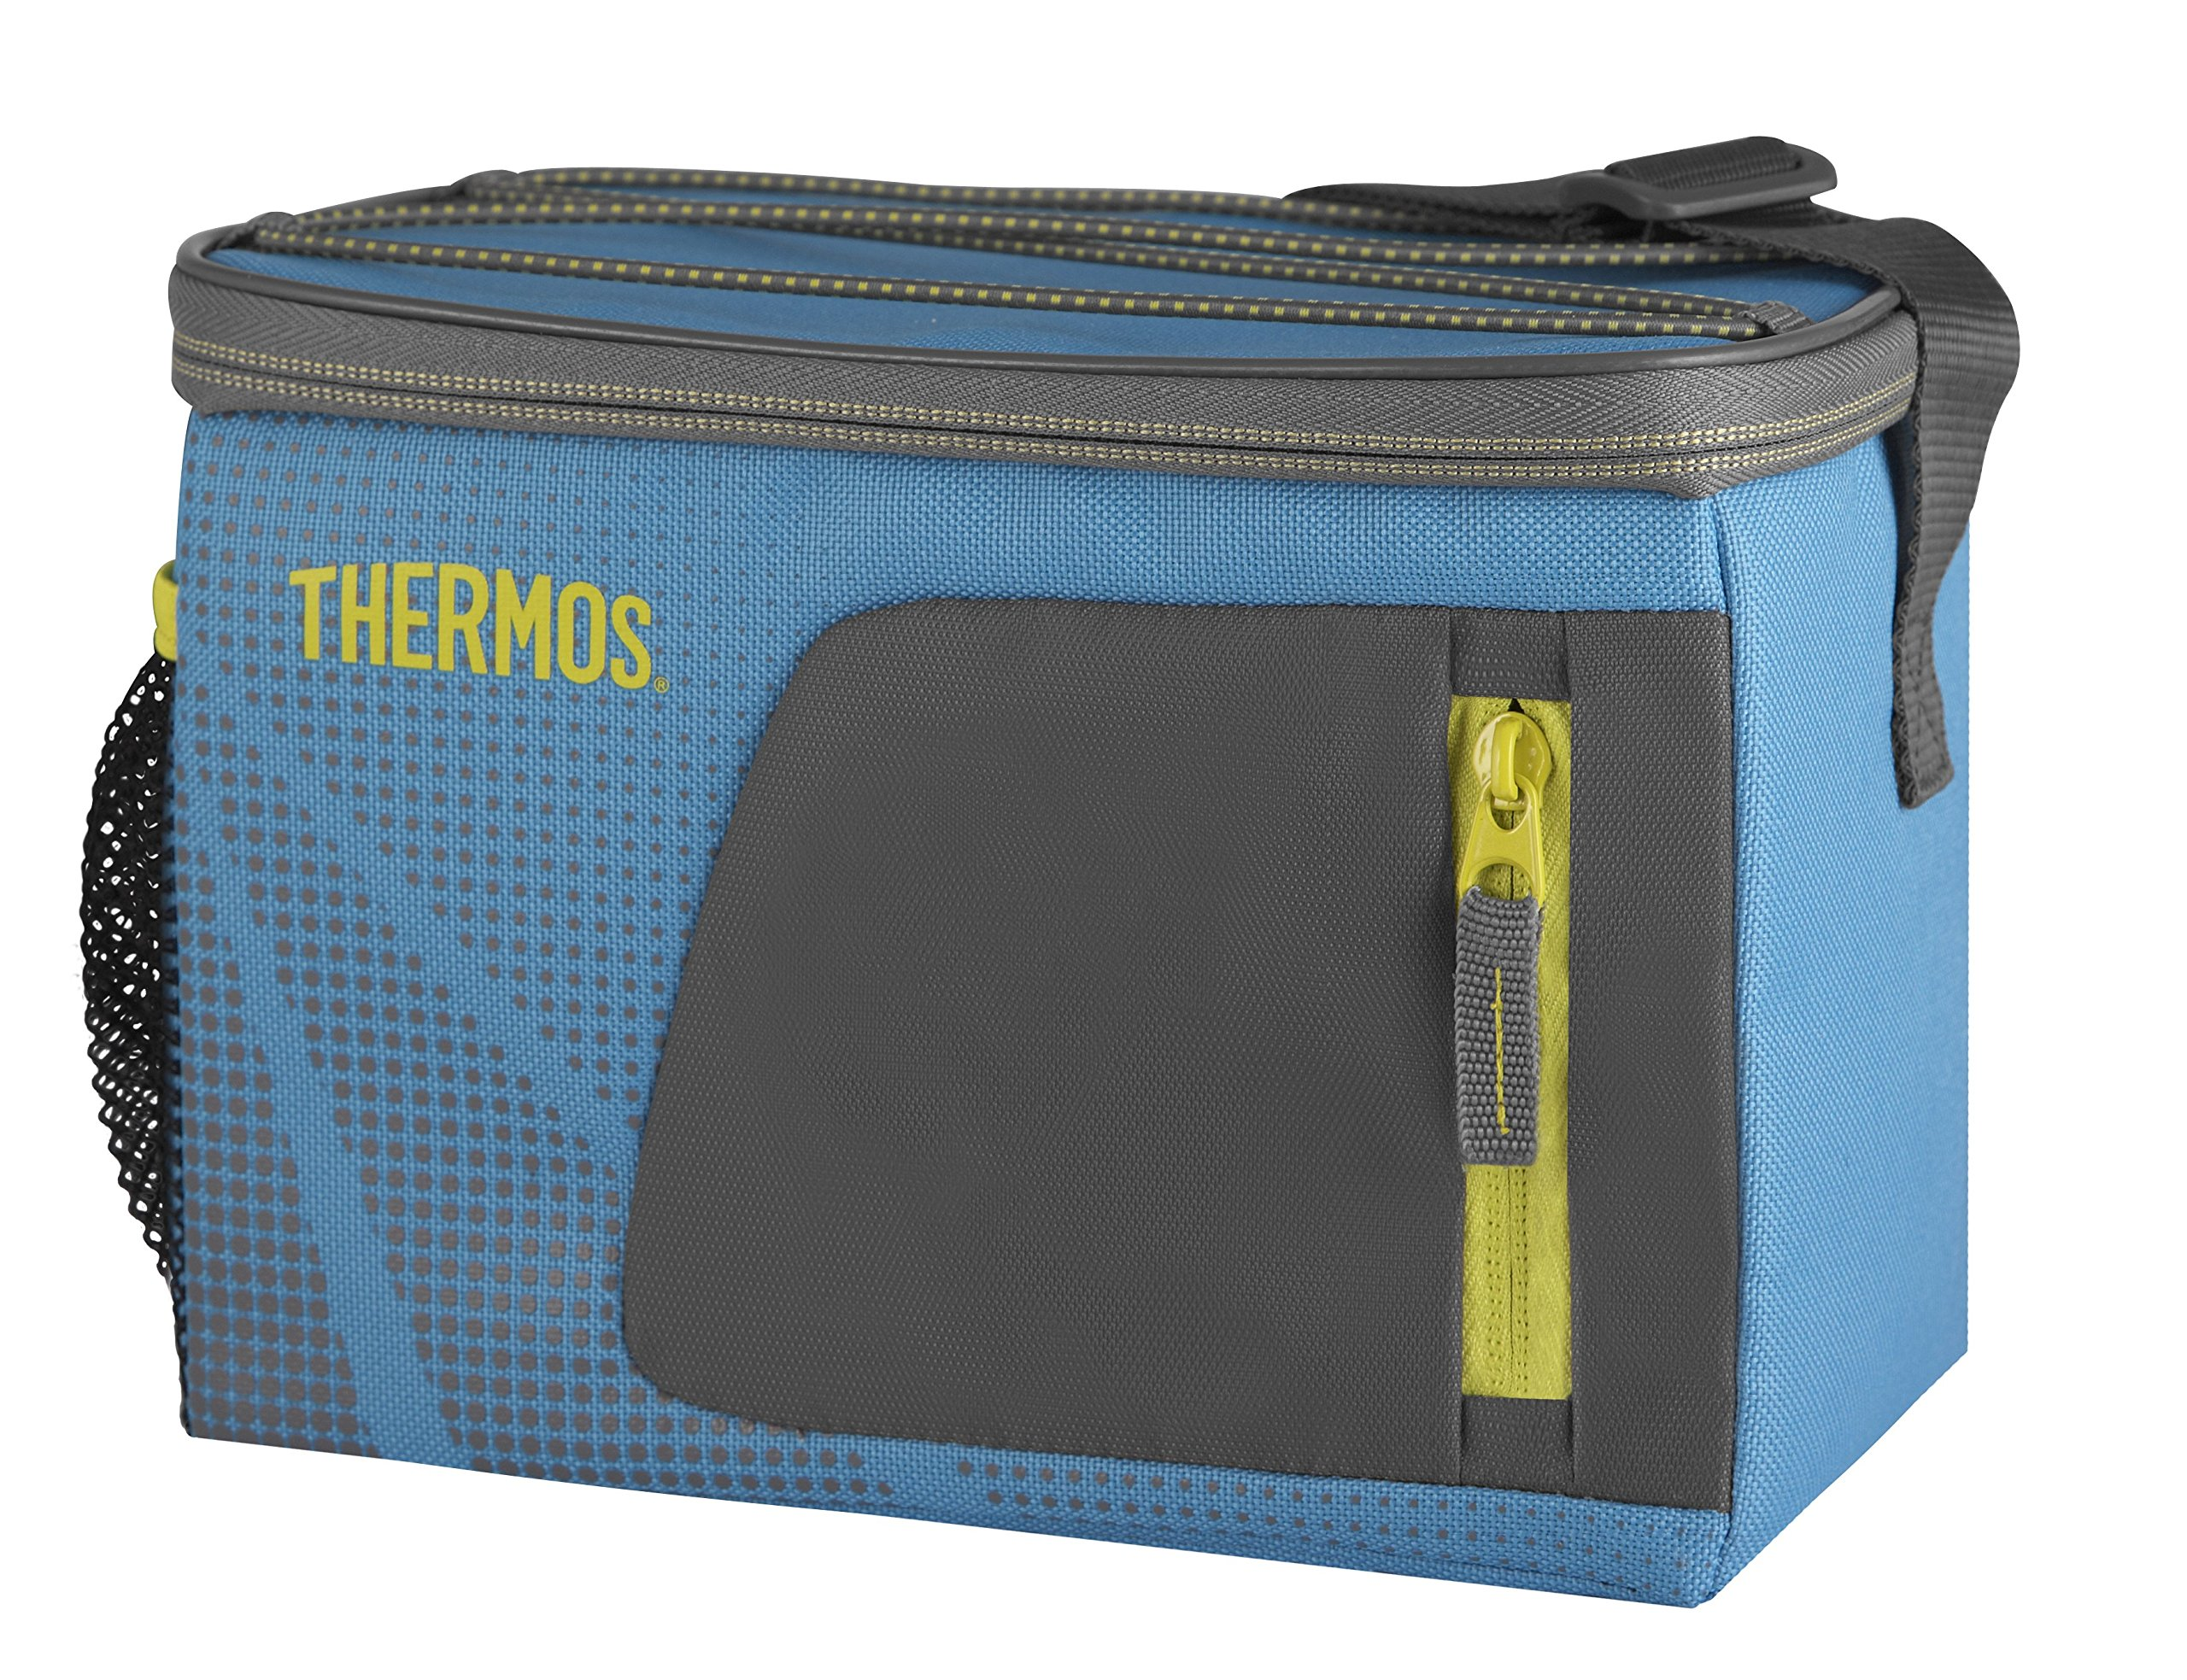 Thermos Radiance 6 Can Cooler, Teal